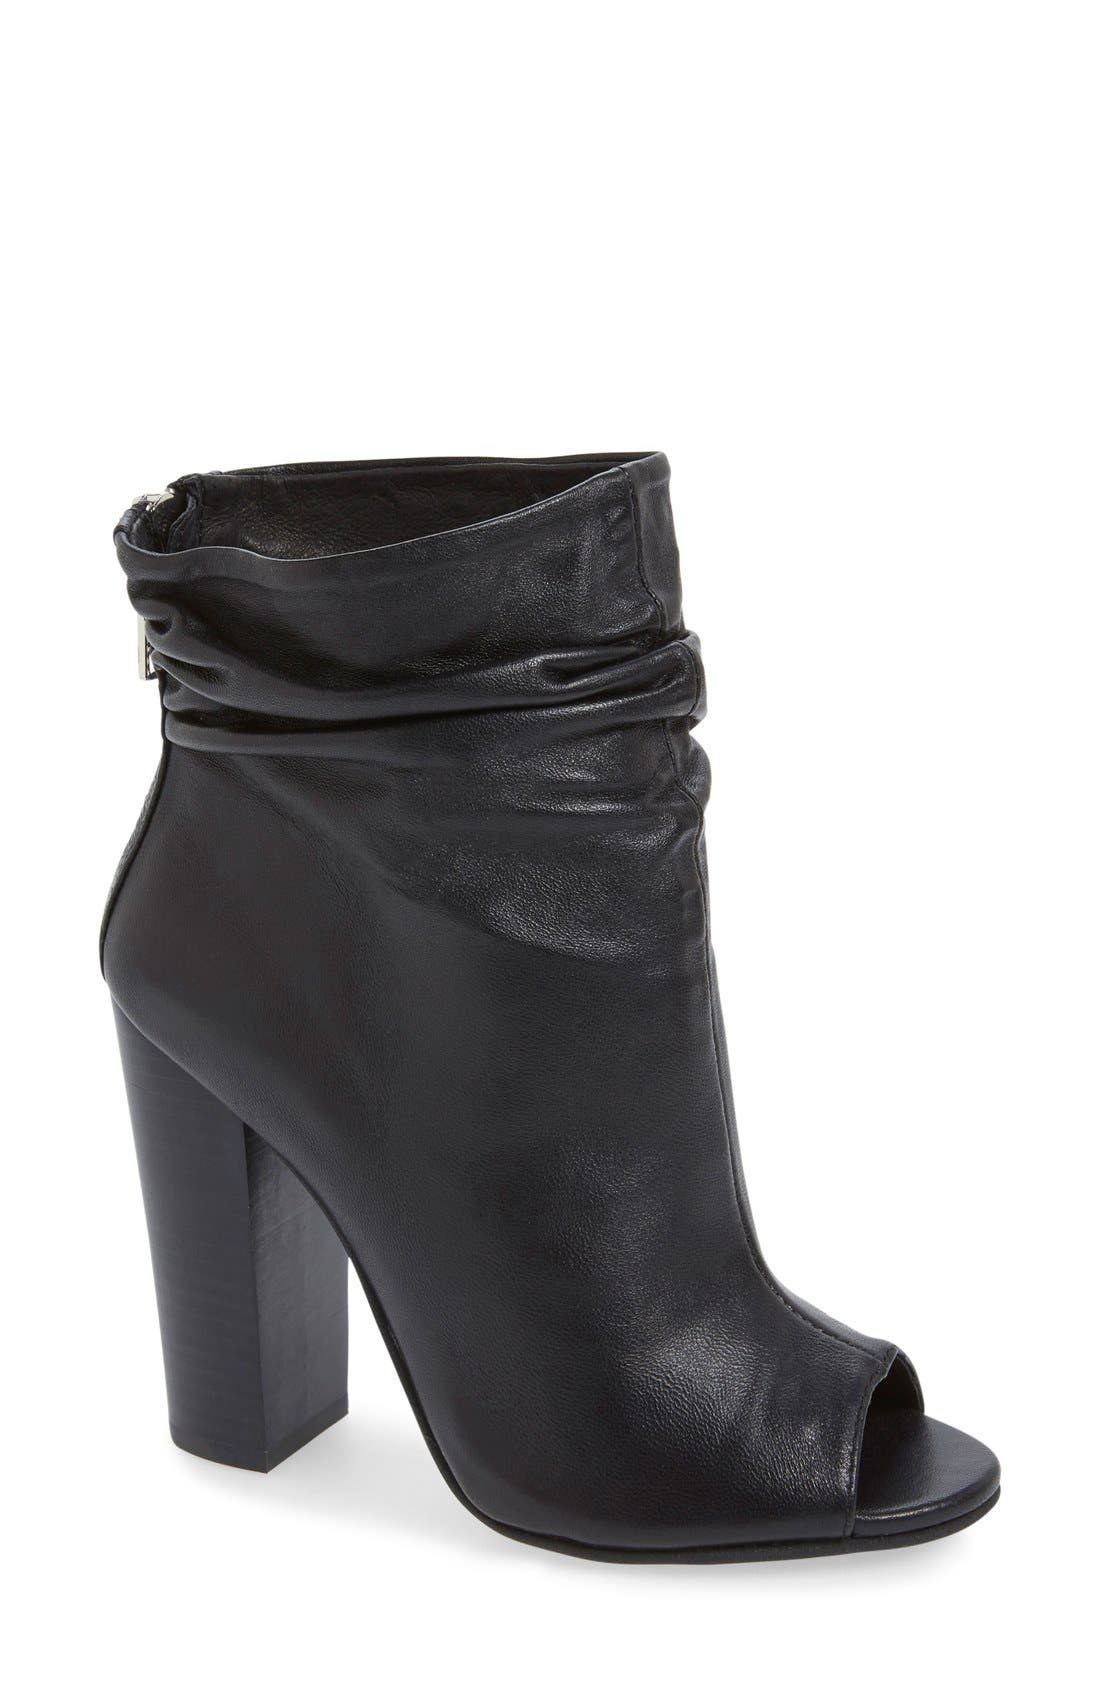 'Liam' Peep Toe Bootie,                         Main,                         color, 001